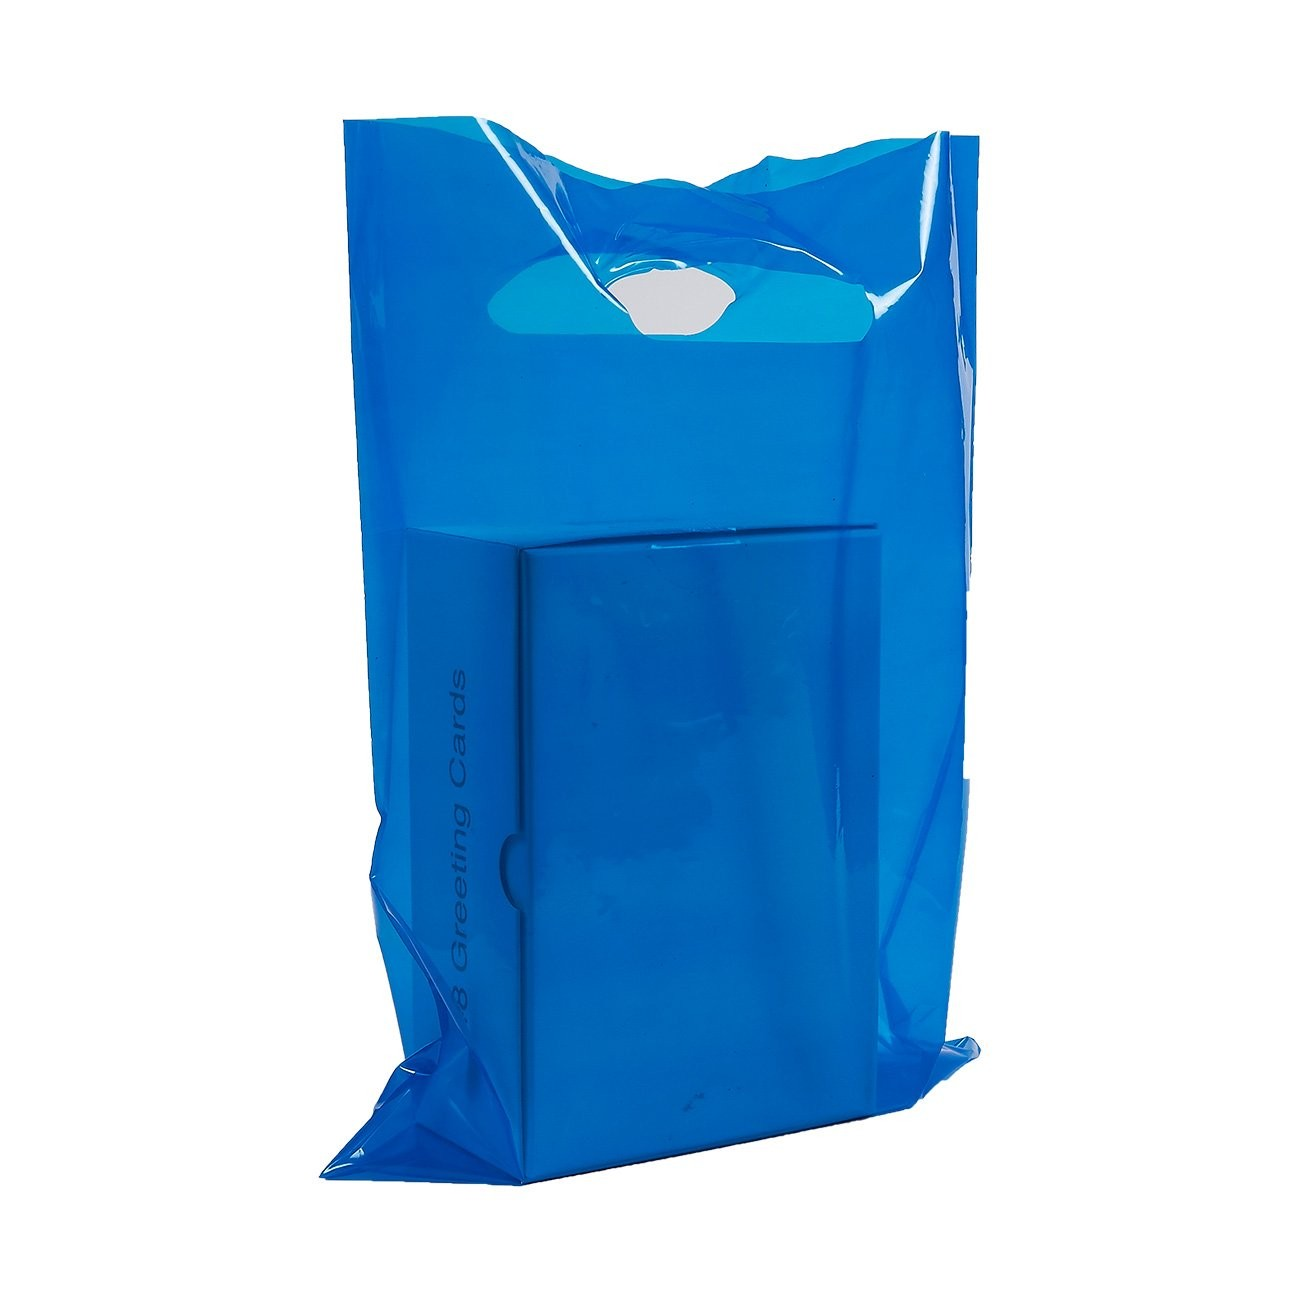 "Glossy Blue Reusable Flat Die Cut Handle Bags 20 cm x 30 cm (7.75"" x 11.75"") (1100 Bags/Lot)"